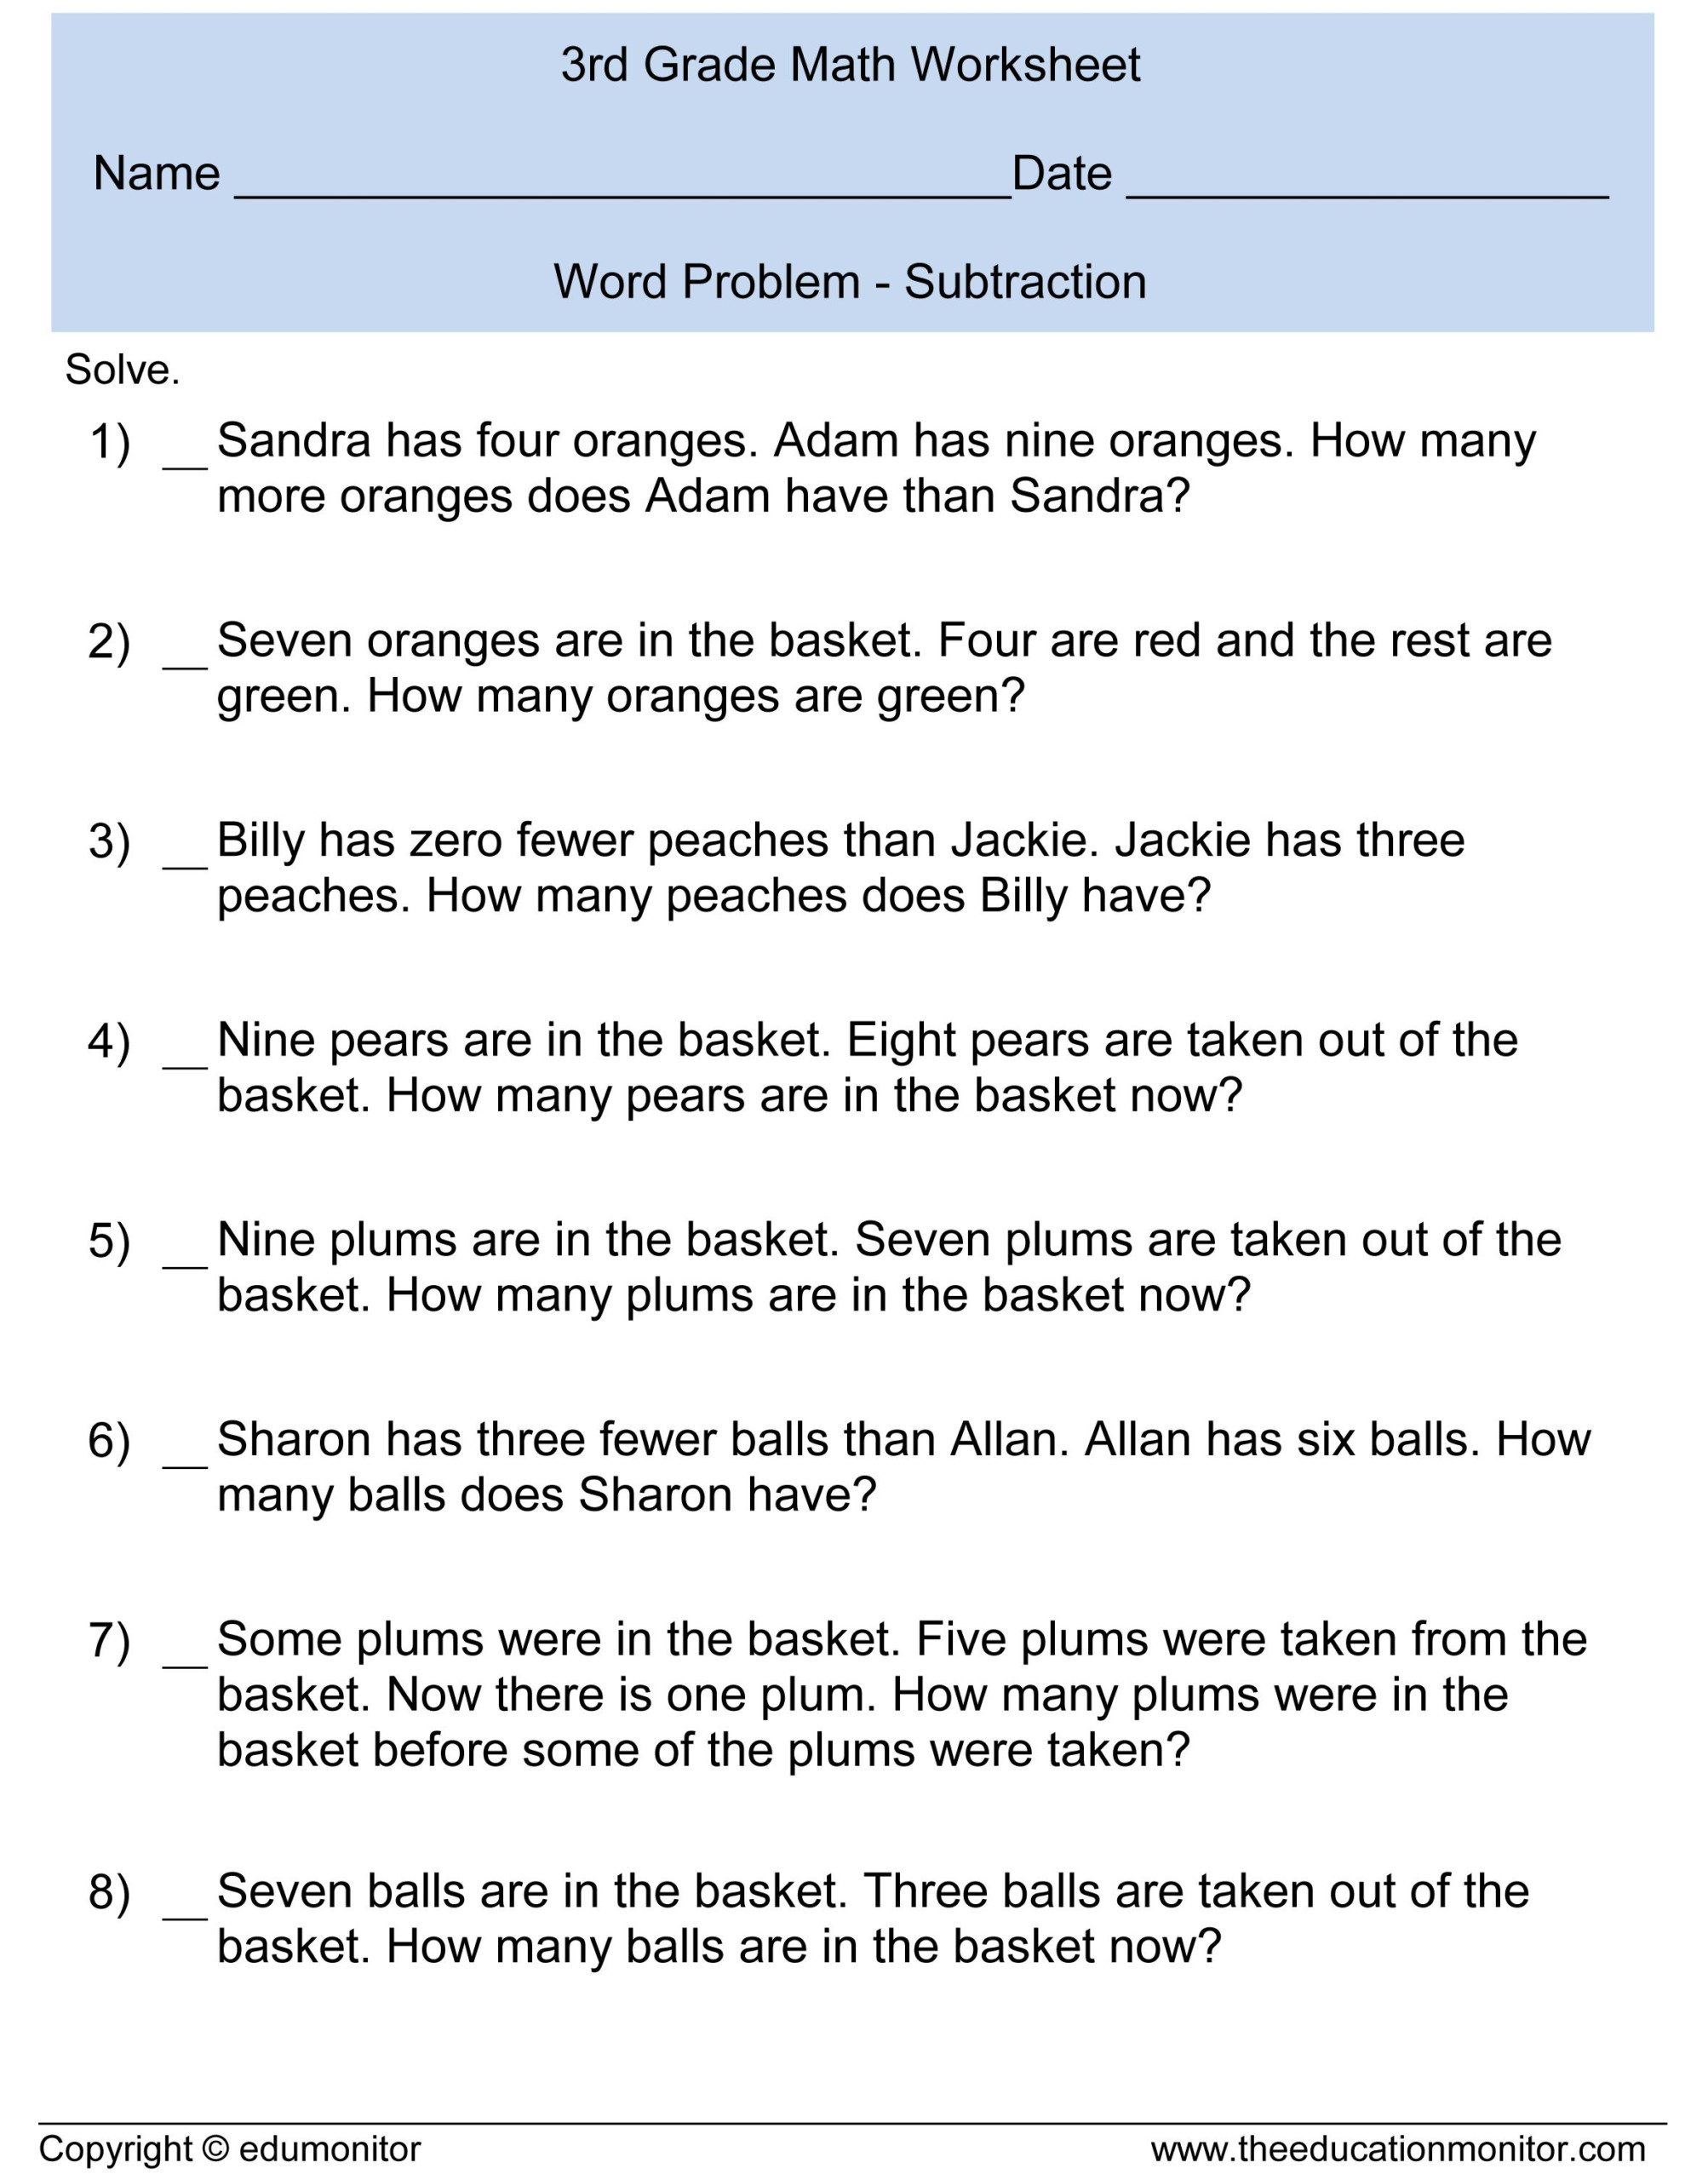 Adding And Subtracting Fractions Worksheets Word Problems